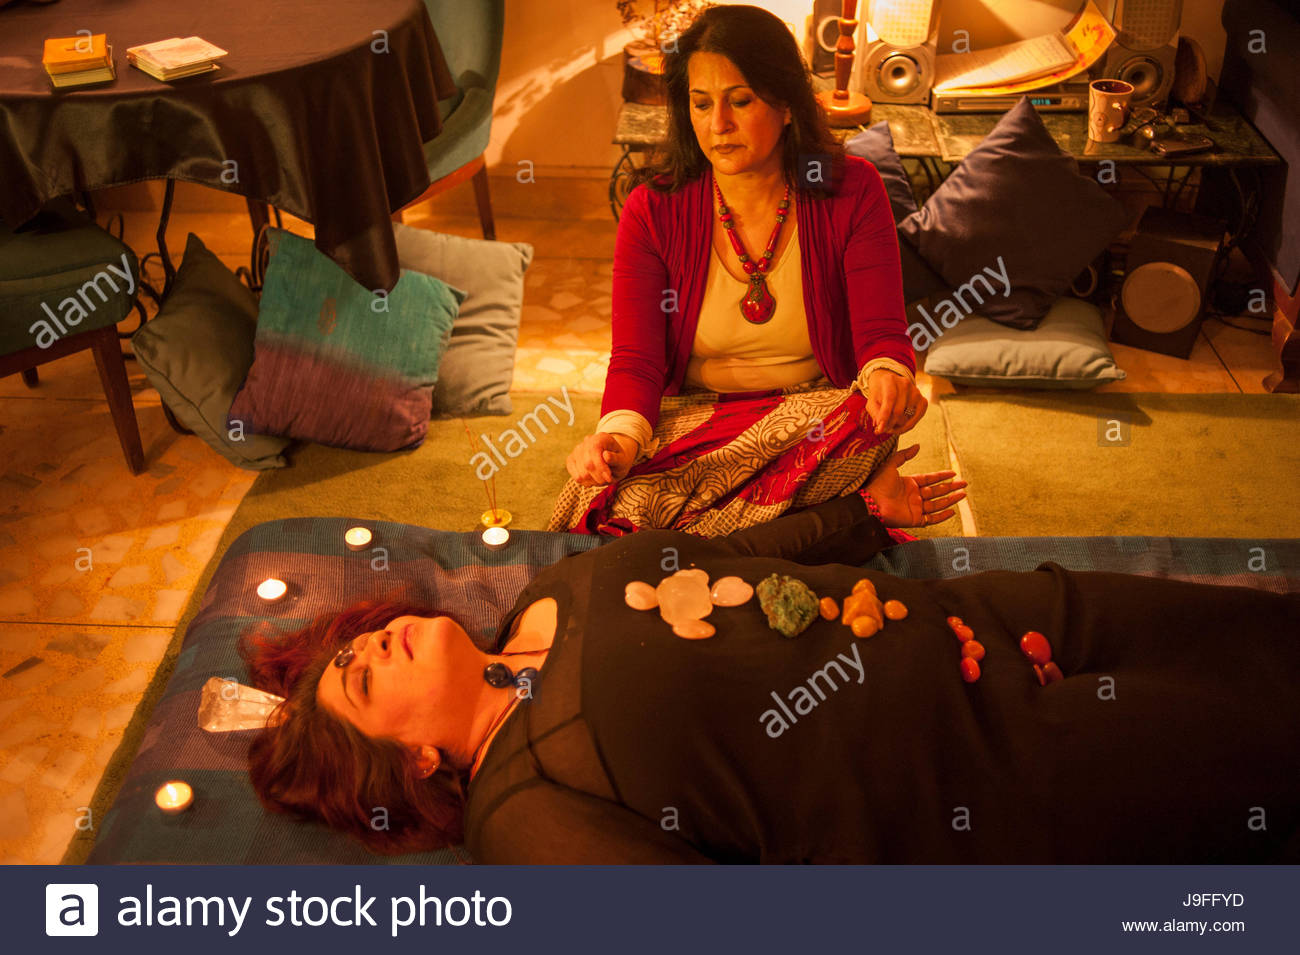 A patient receives Chakra treatment using crystals. - Stock Image